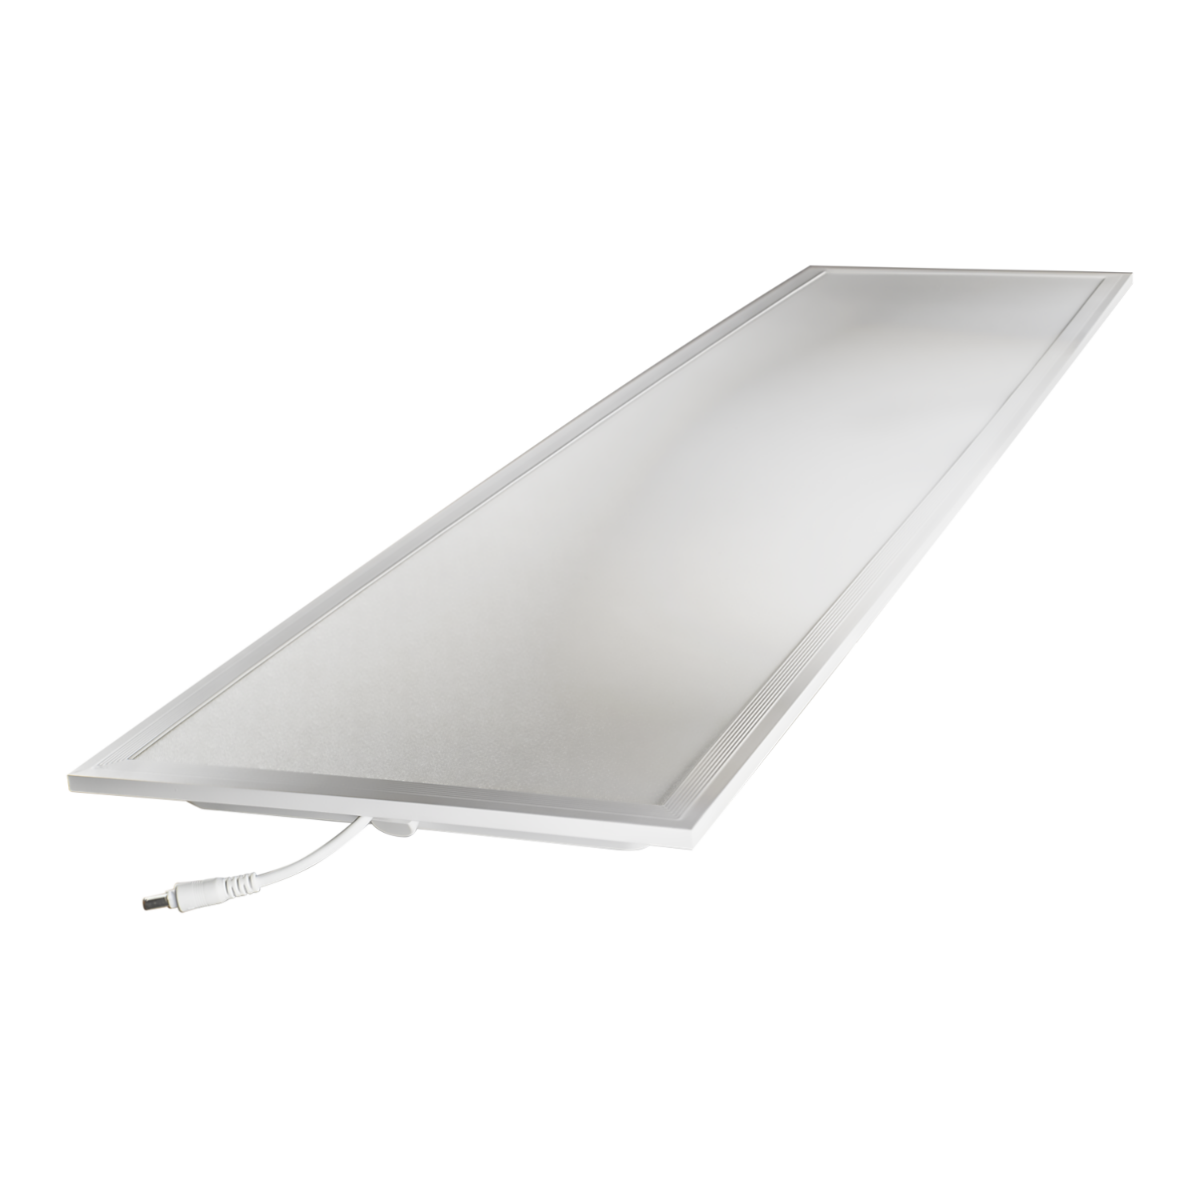 Noxion LED Panel Delta Pro V2.0 Xitanium DALI 30W 30x120cm 4000K 4110lm UGR <19 | Dali Dimmable - Replacer for 2x36W